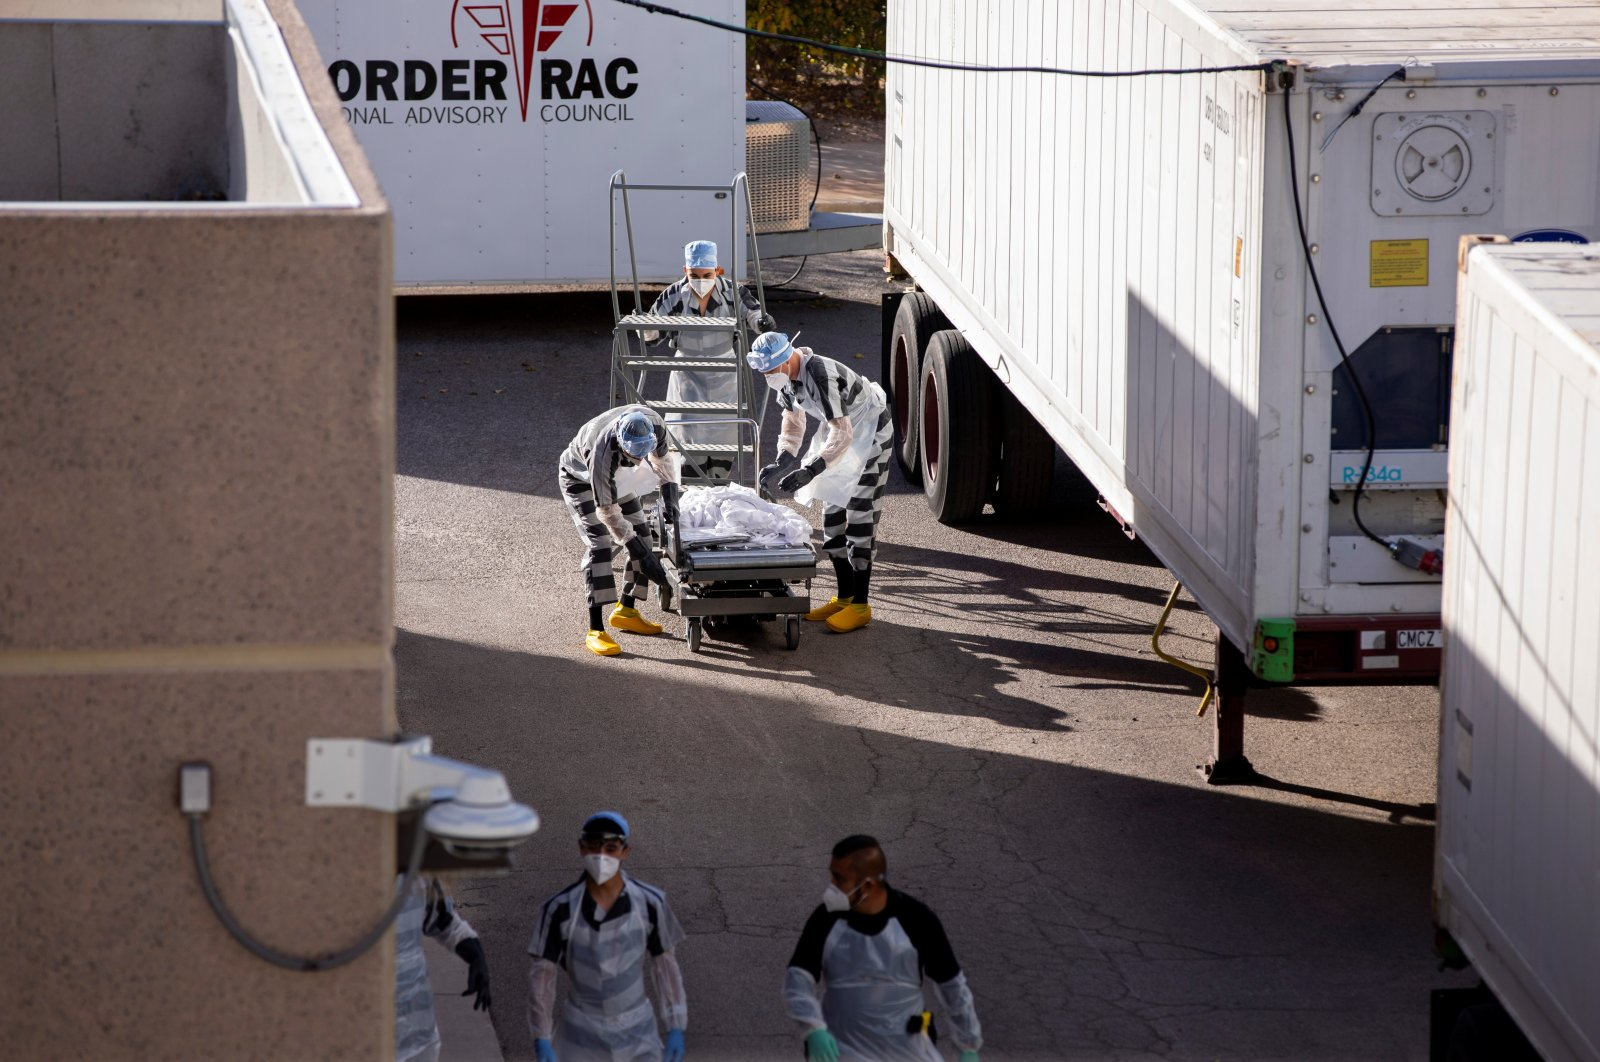 El Paso County detention inmates, also known as trustees (low-security inmates) help move bodies to refrigerated trailers deployed during a surge of COVID-19 deaths, outside the Medical Examiner's Office in El Paso, Texas, U.S. Nov. 14, 2020.  (Reuters Photo)